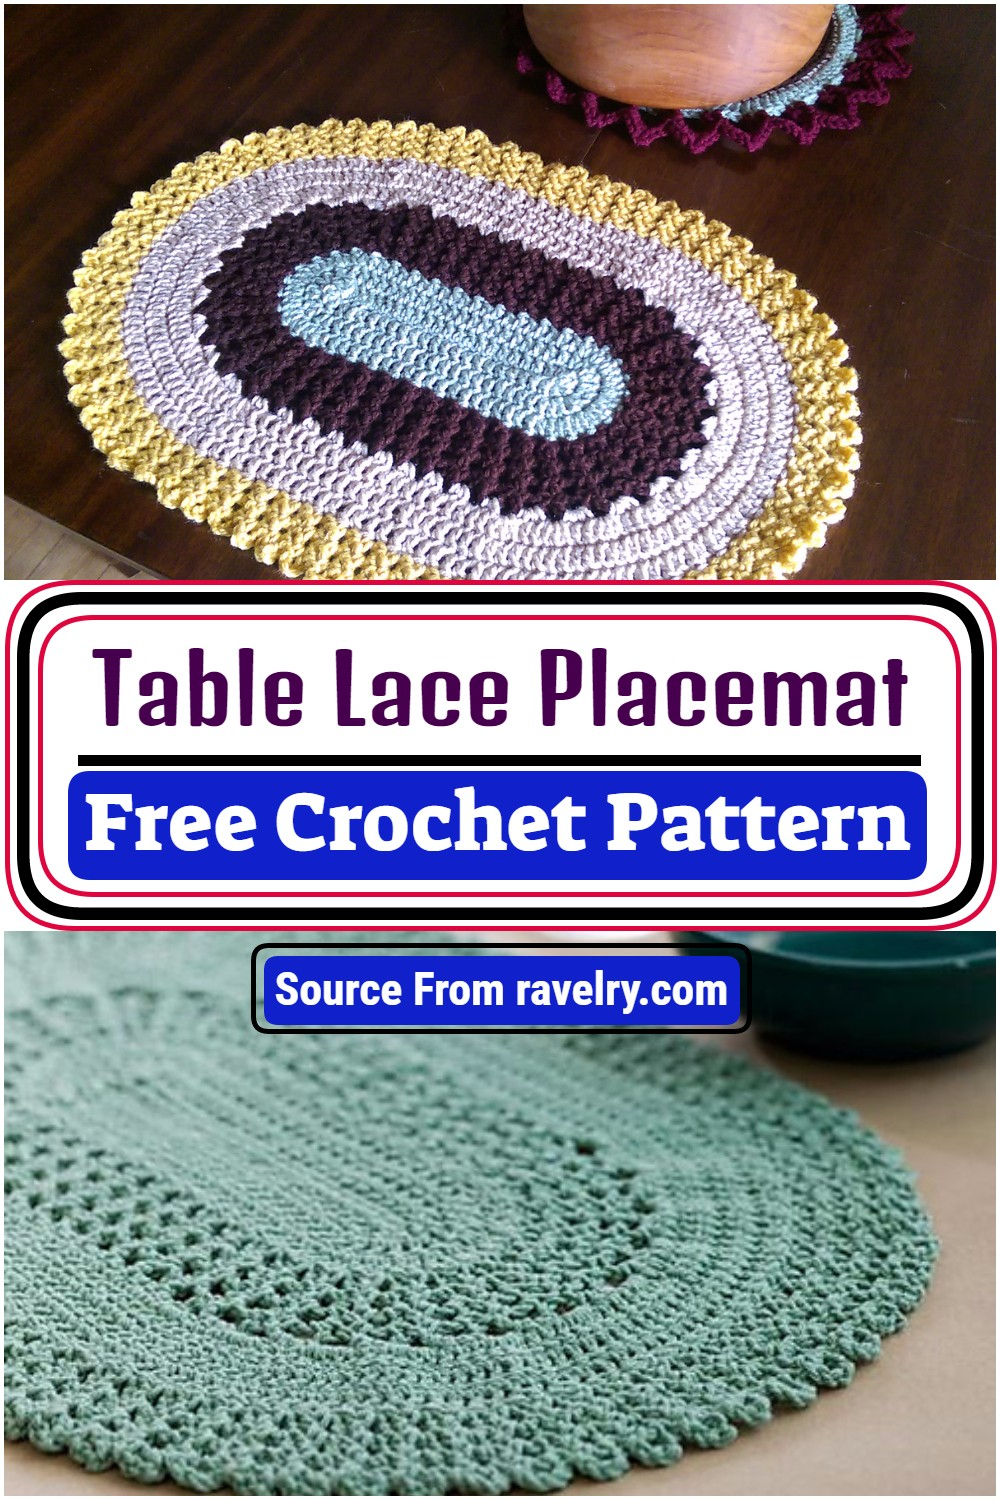 Free Crochet Table Lace Placemat Pattern